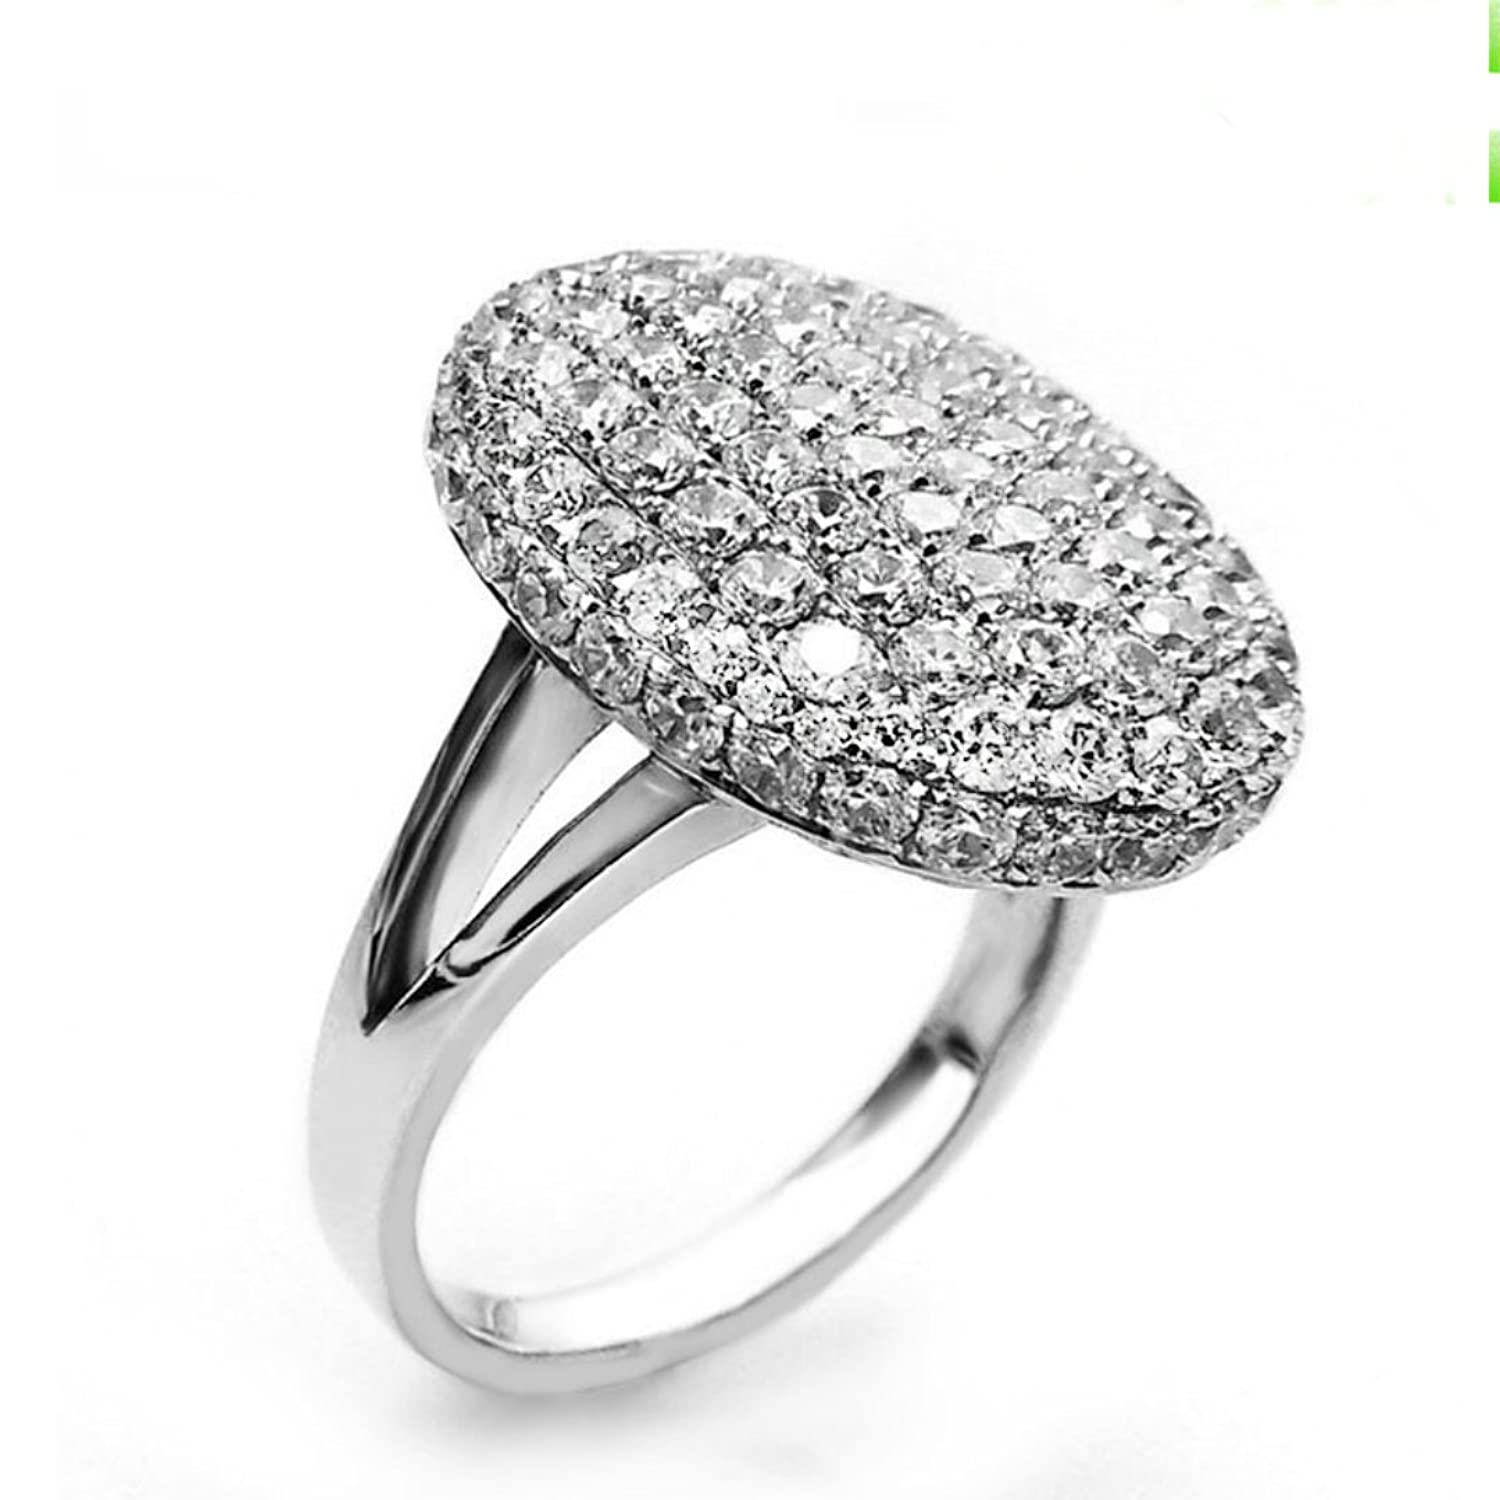 Buy Lady Rainbow The Twilight Saga Bella Edward Crystal Wedding Ring Best  Gifts Engagment Movie (replica) Online At Low Prices In India  Amazon  Jewellery